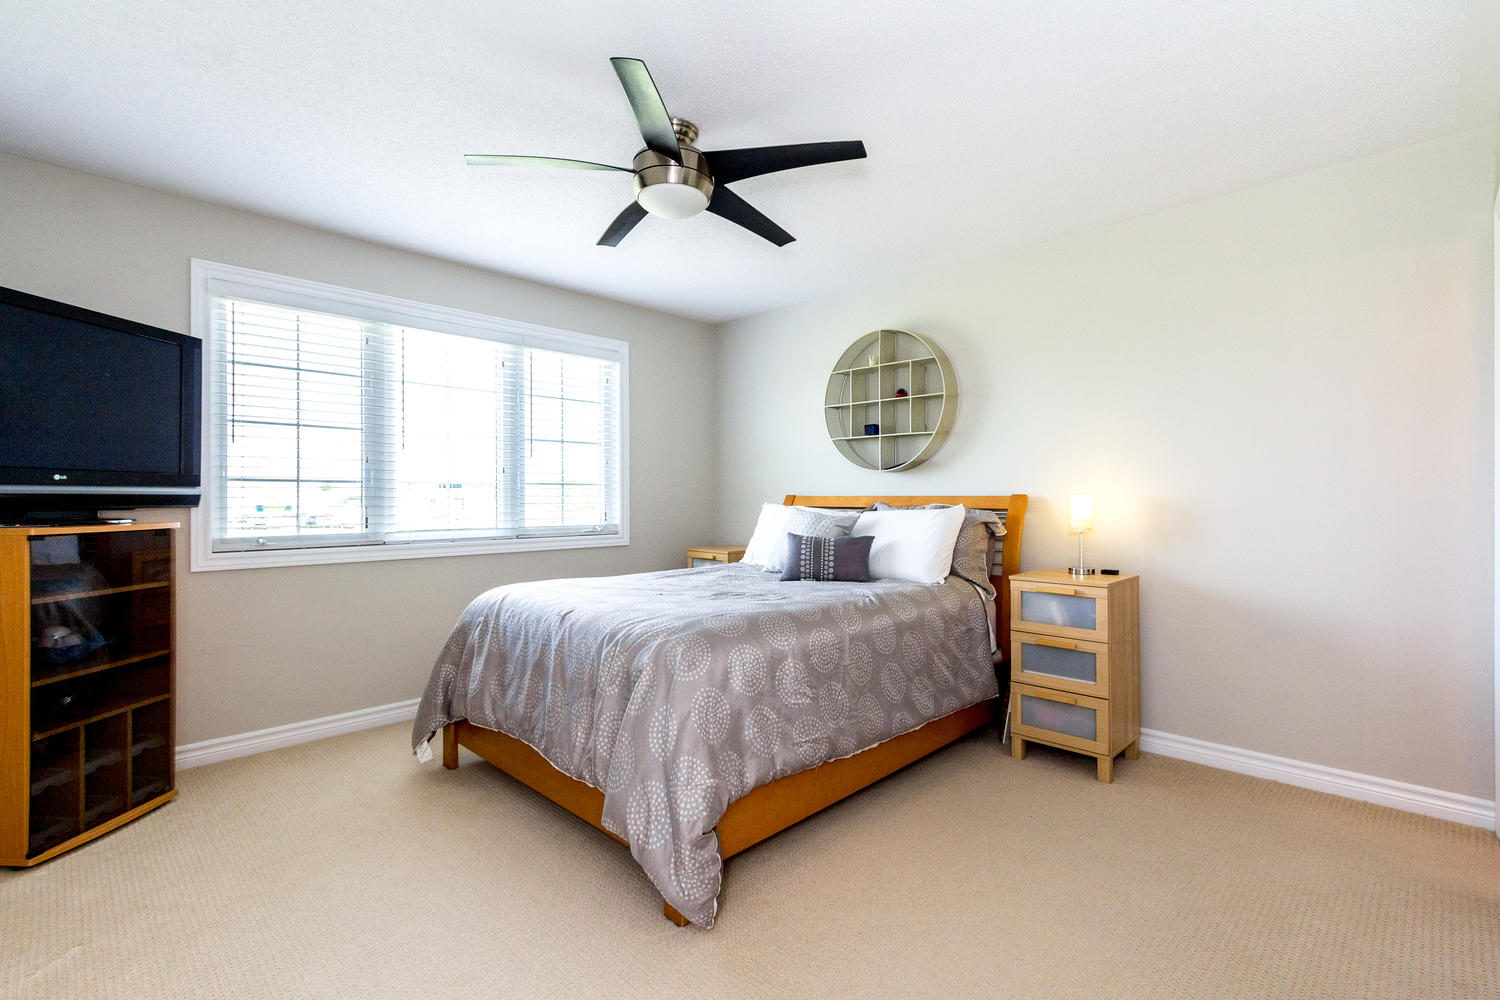 Spacious Master Bedroom with Large Walkin Closet and Stunning Ensuite